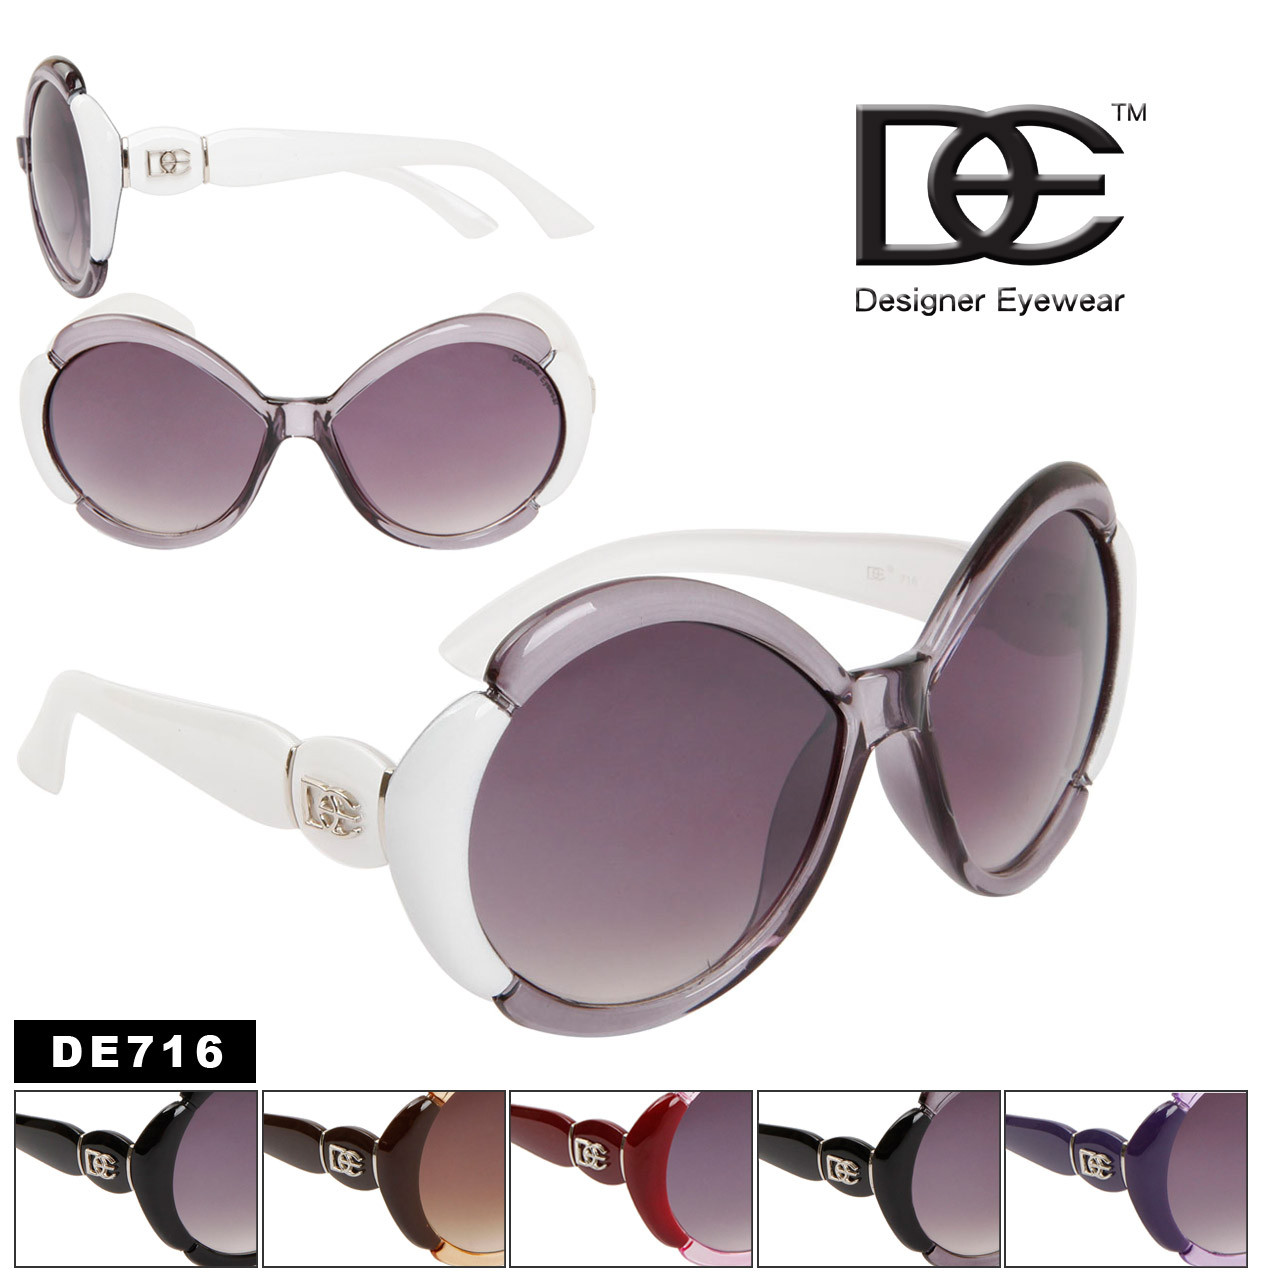 Women's Wholesale Sunglasses DE716